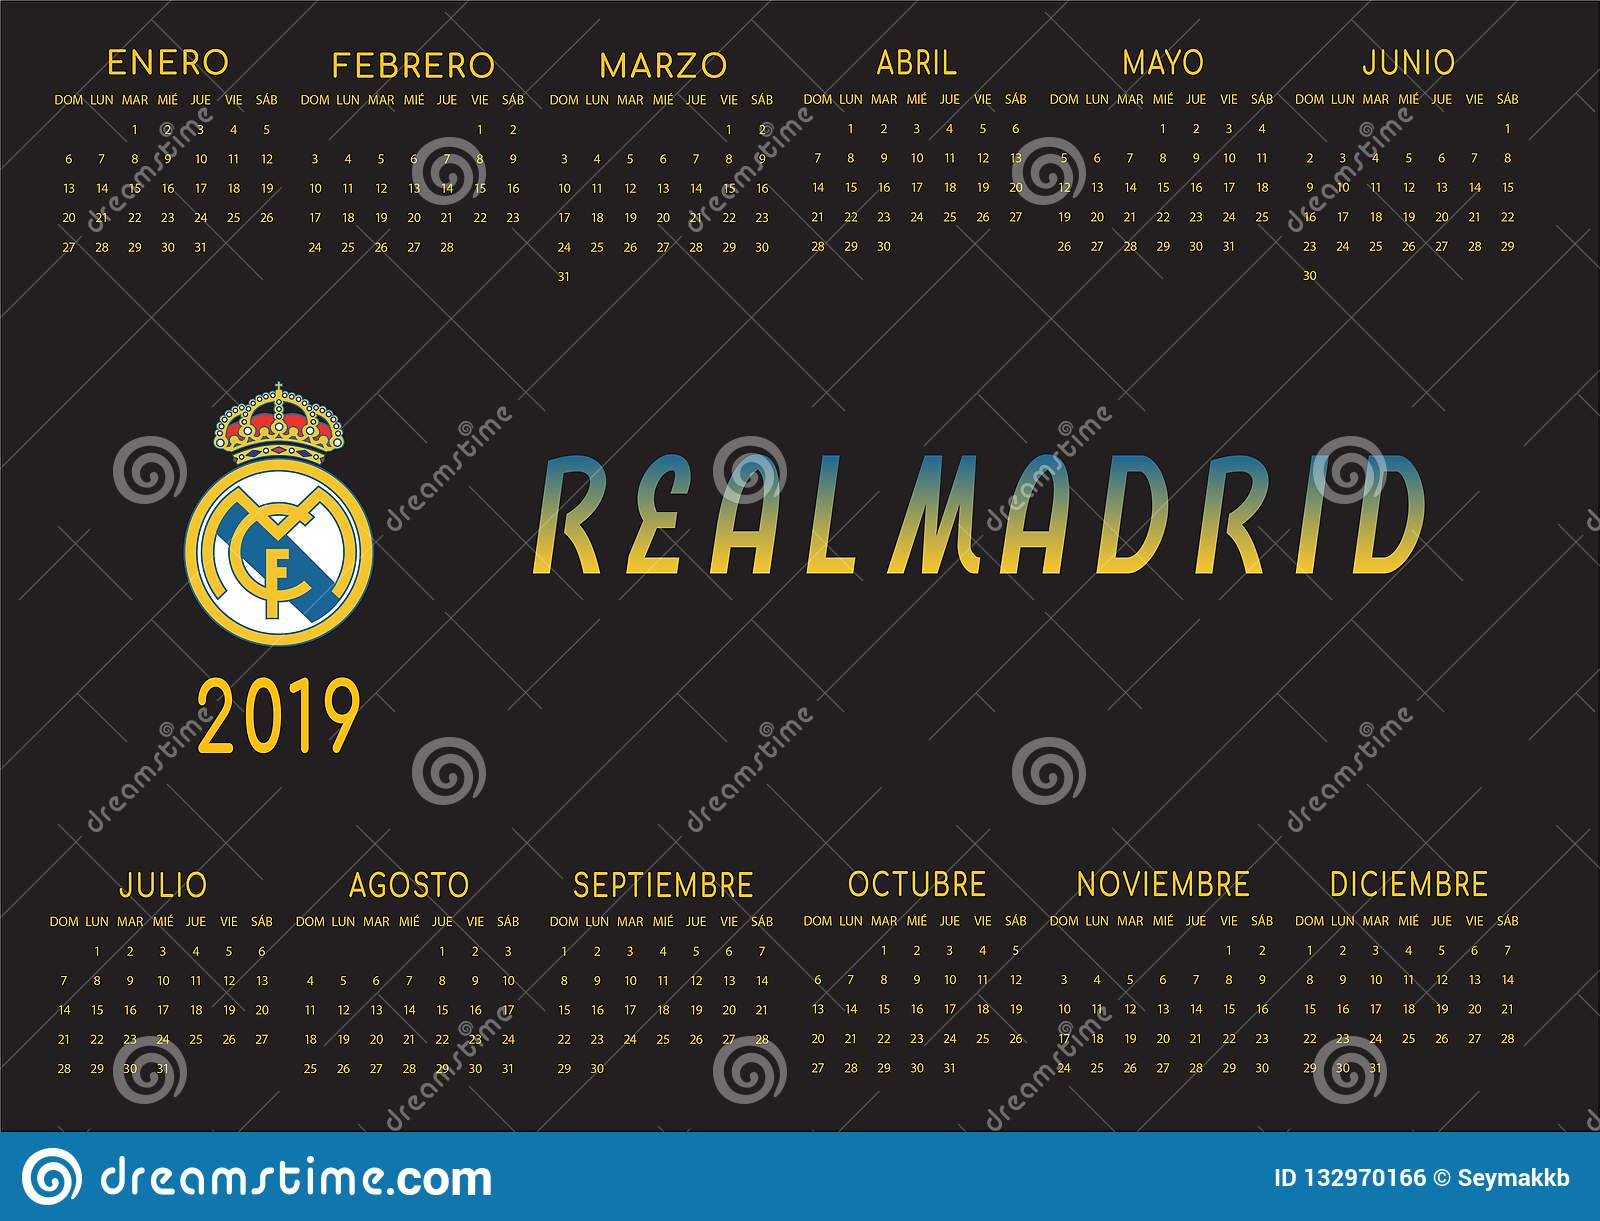 Calendrier Madrid.Le Noir Backgrounded Le Calendrier 2019 De Real Madrid Photo